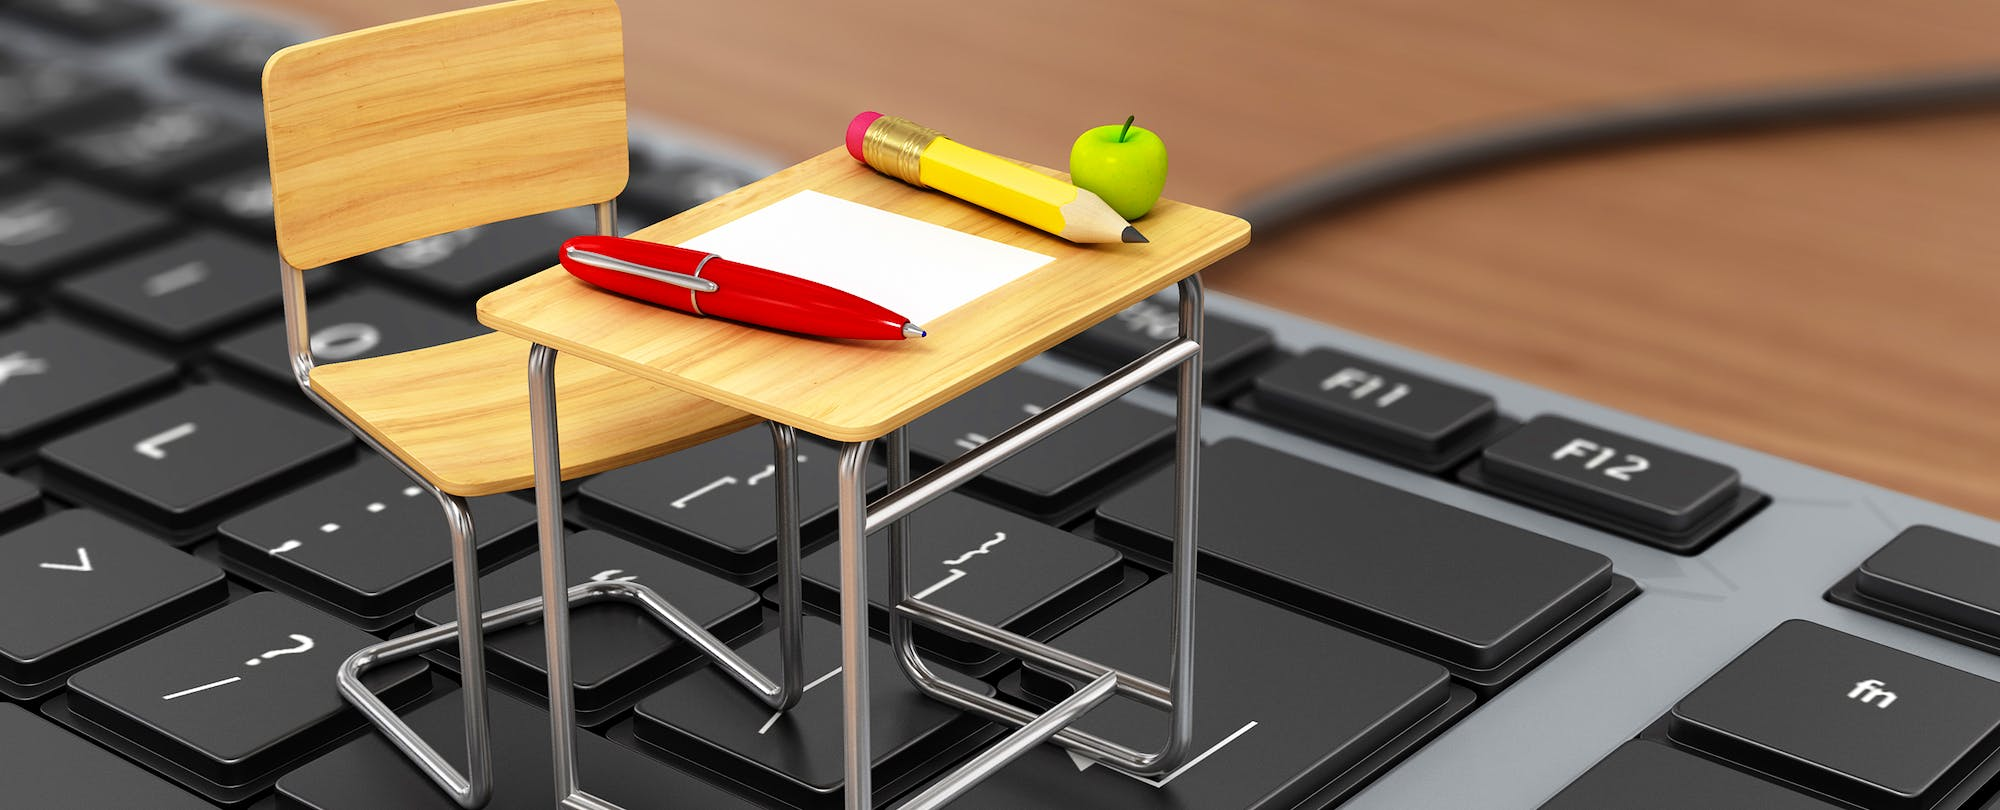 Online Courses Shouldn't Use Remote Proctoring Tools. Here's Why.